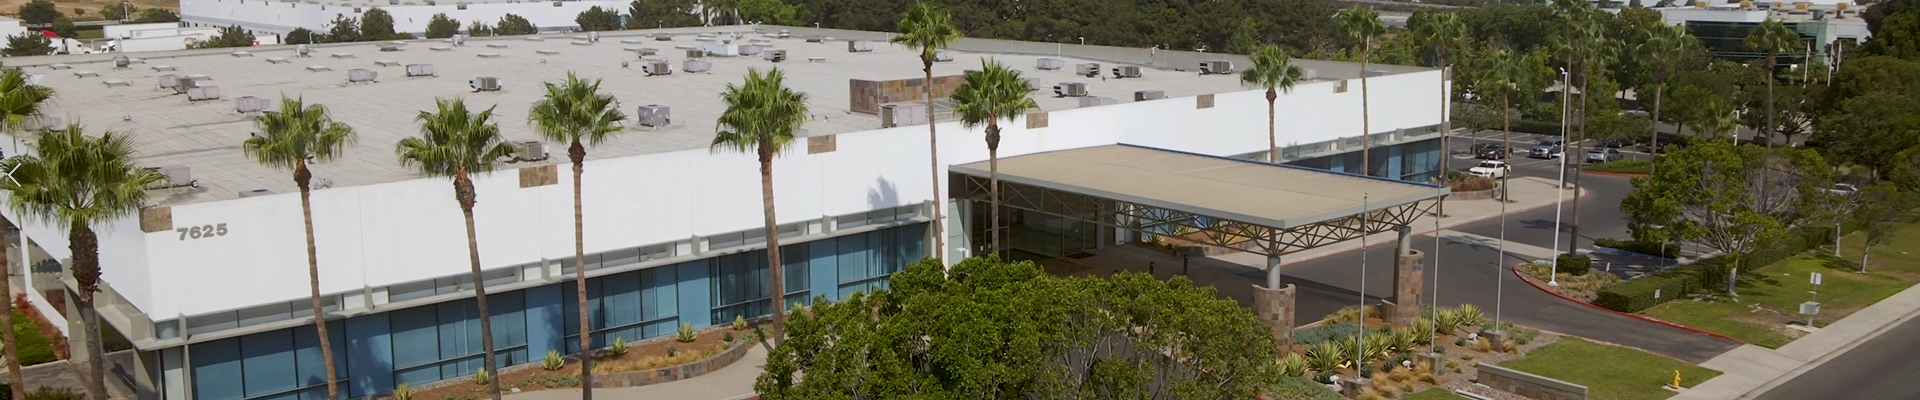 Rock West Composites Moves Into Its New San Diego Headquarters